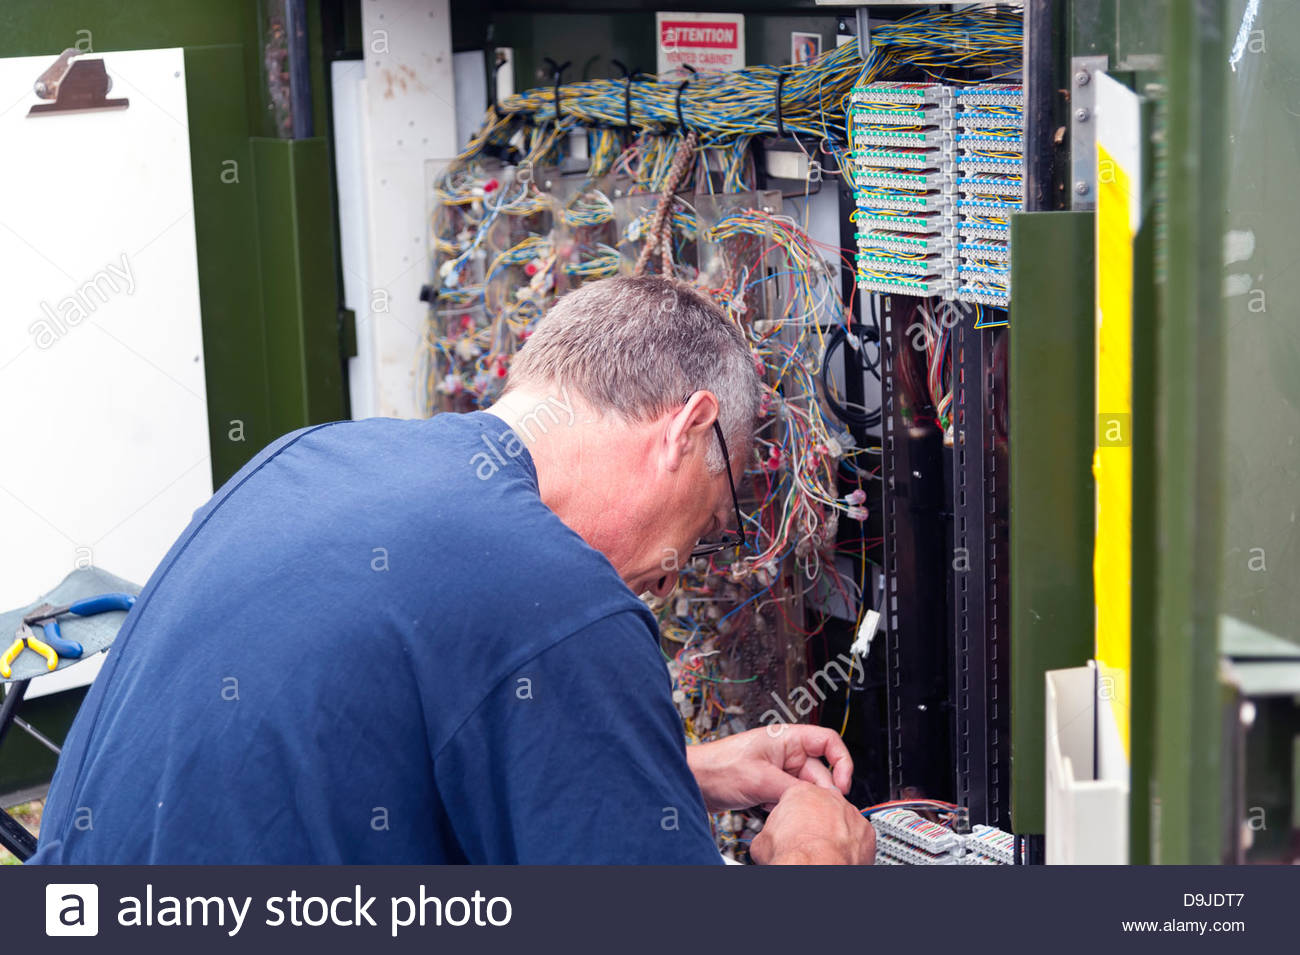 Uk Telephone Cabinet Stockfotos & Uk Telephone Cabinet Bilder - Alamy